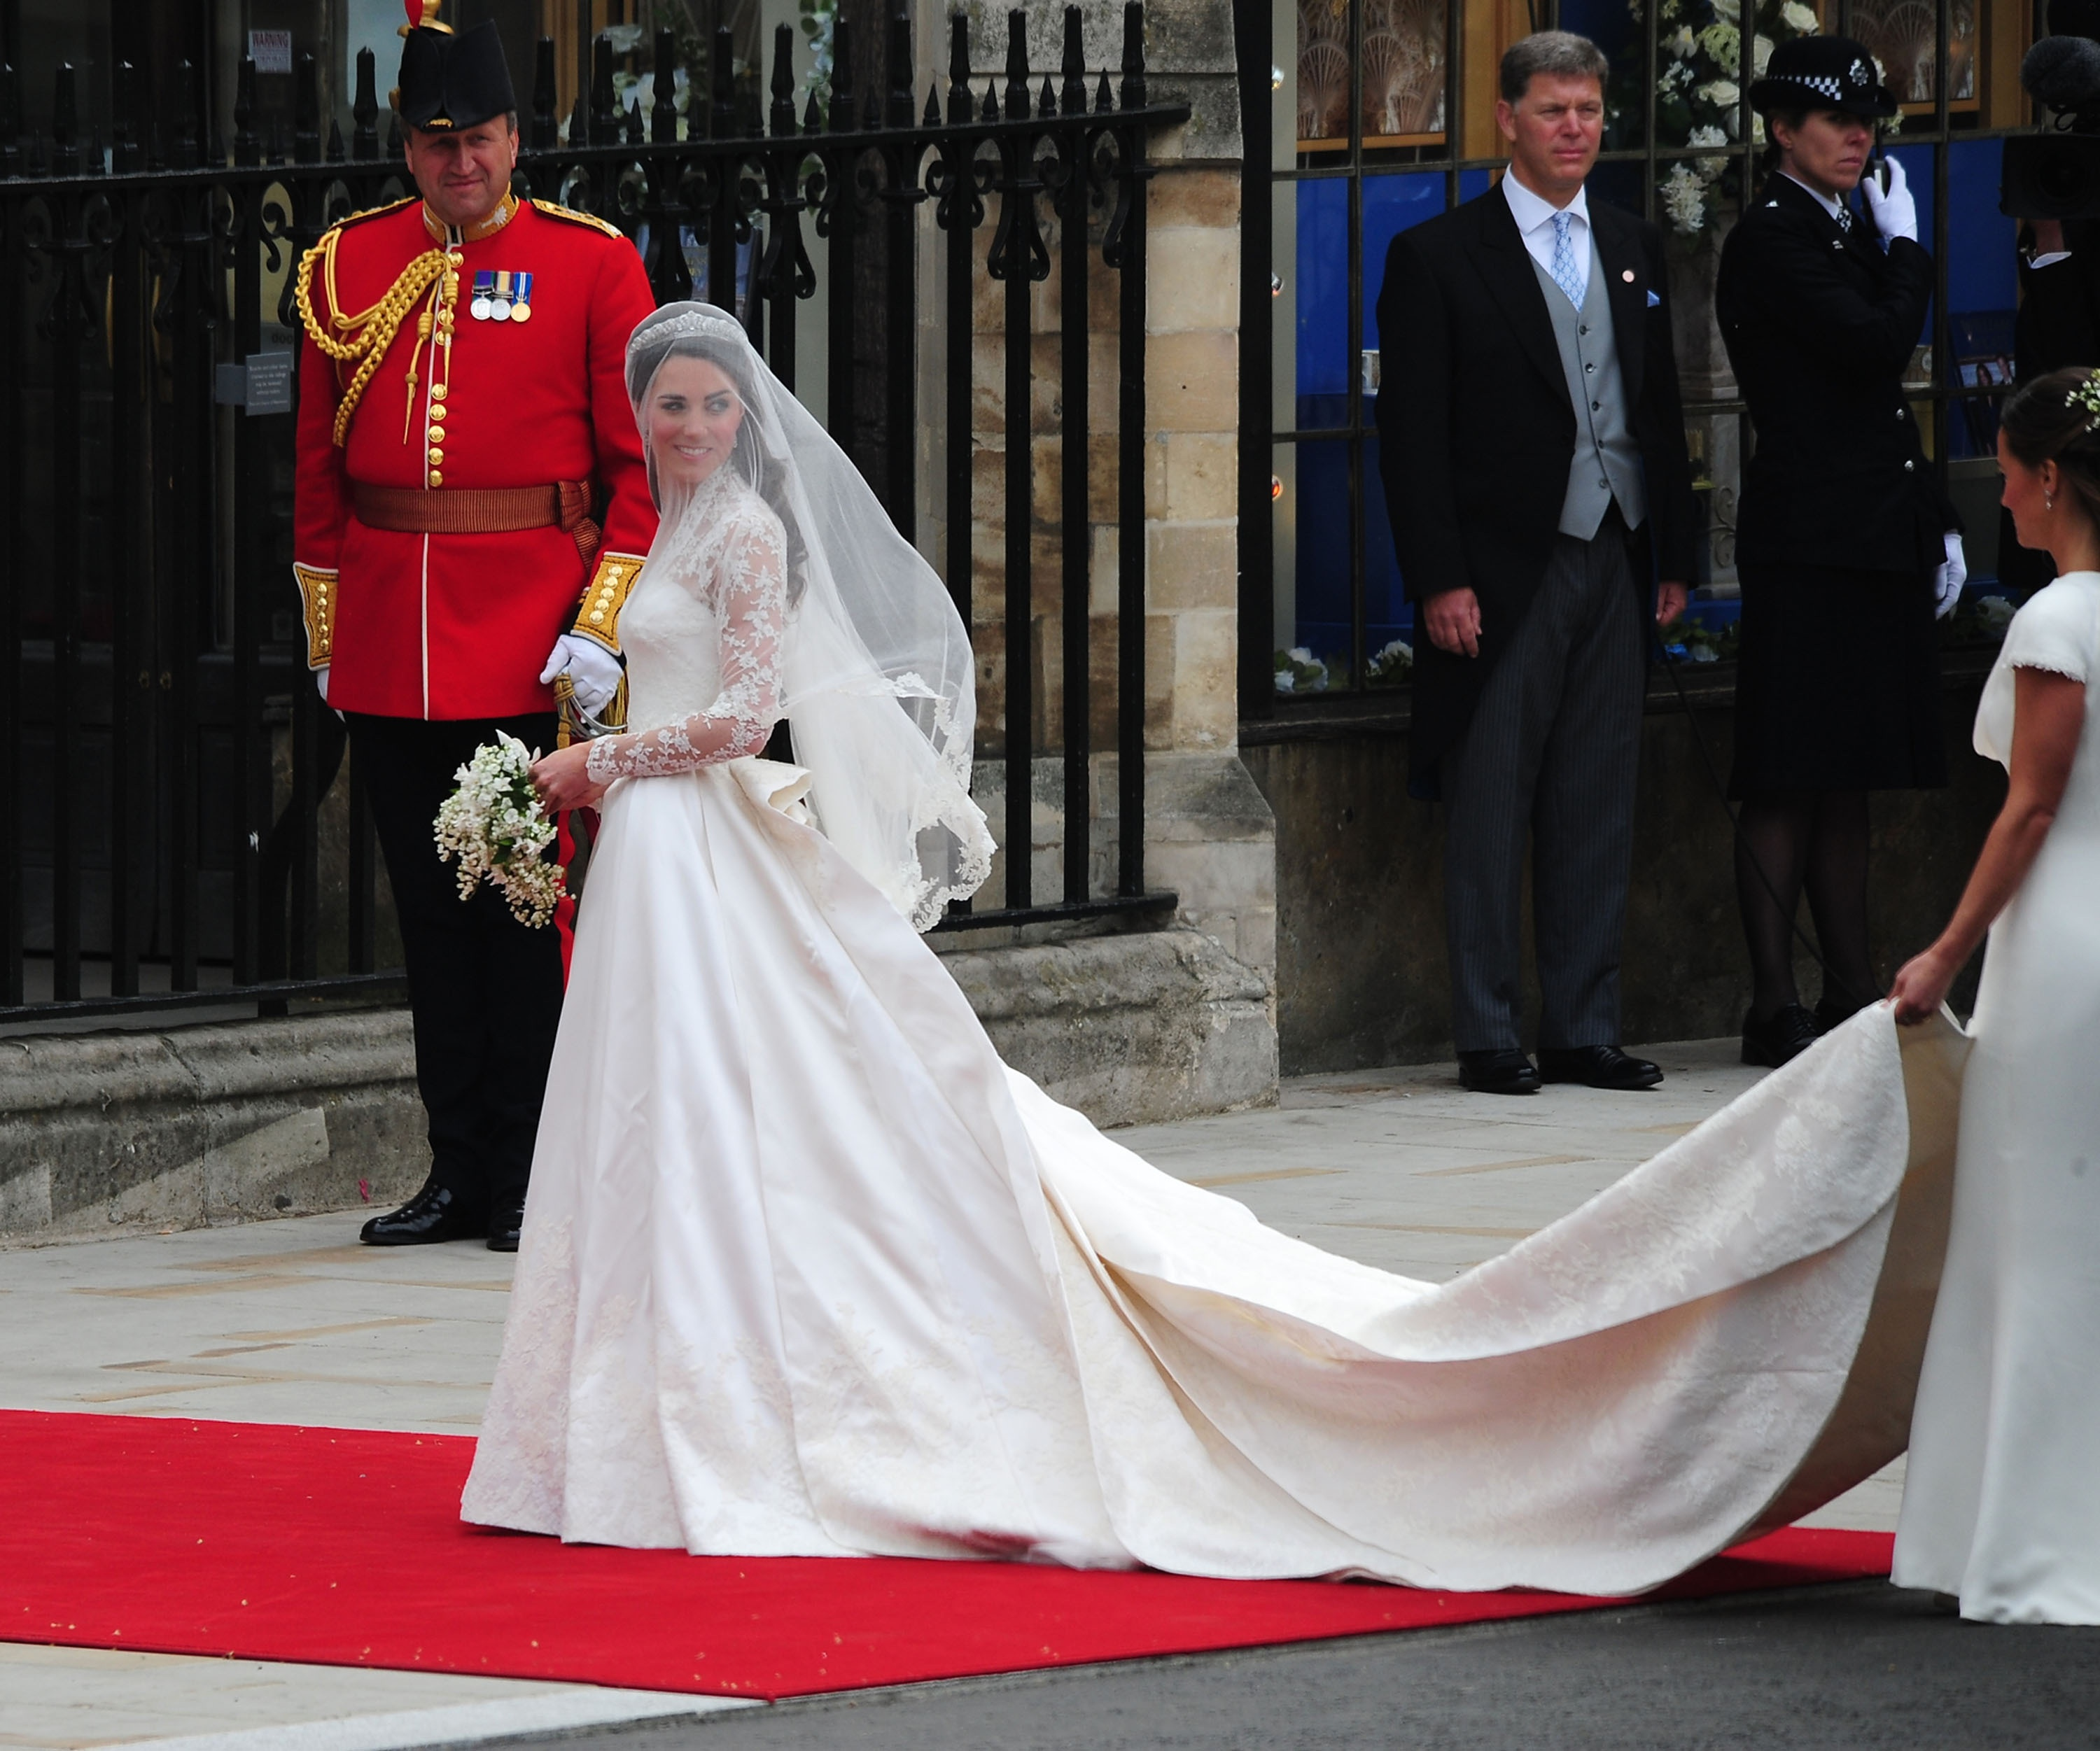 Alexander Mcqueen Sarah Burton Was The Top Choice As Rumors Spread Days Before Wedding Paparazzi Spotted What They Presumed To Be Designer